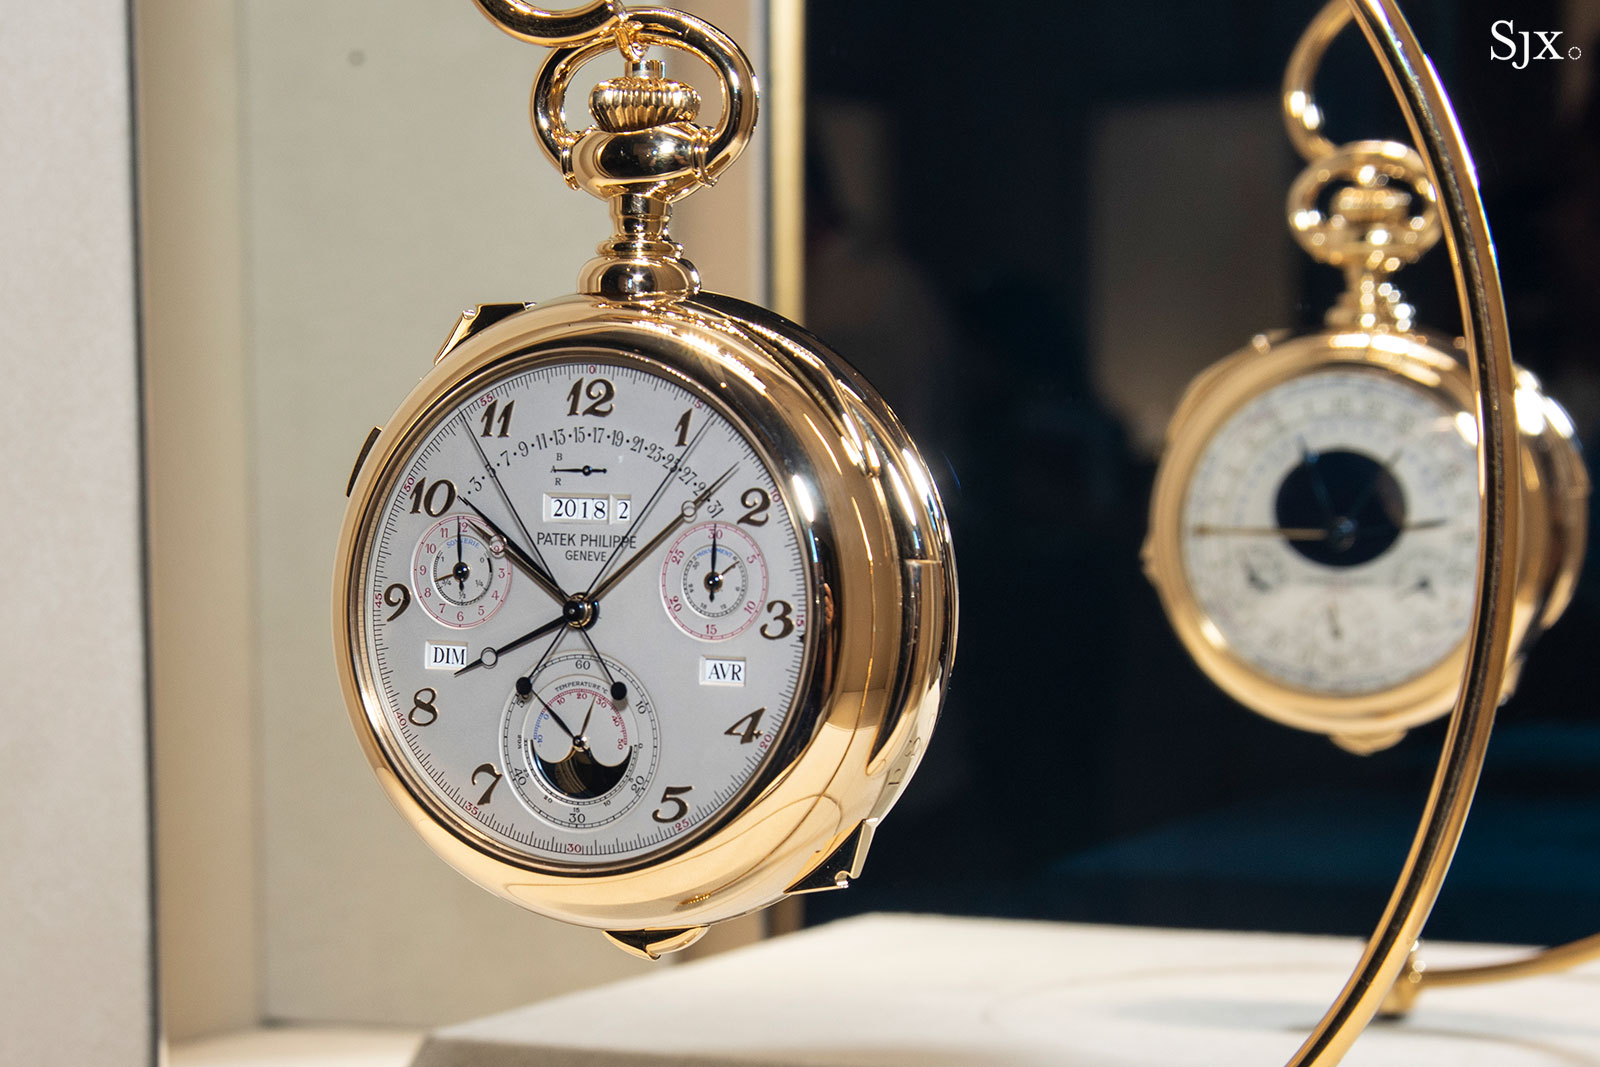 patek philippe grand exhibition singapore 2019 cal 89